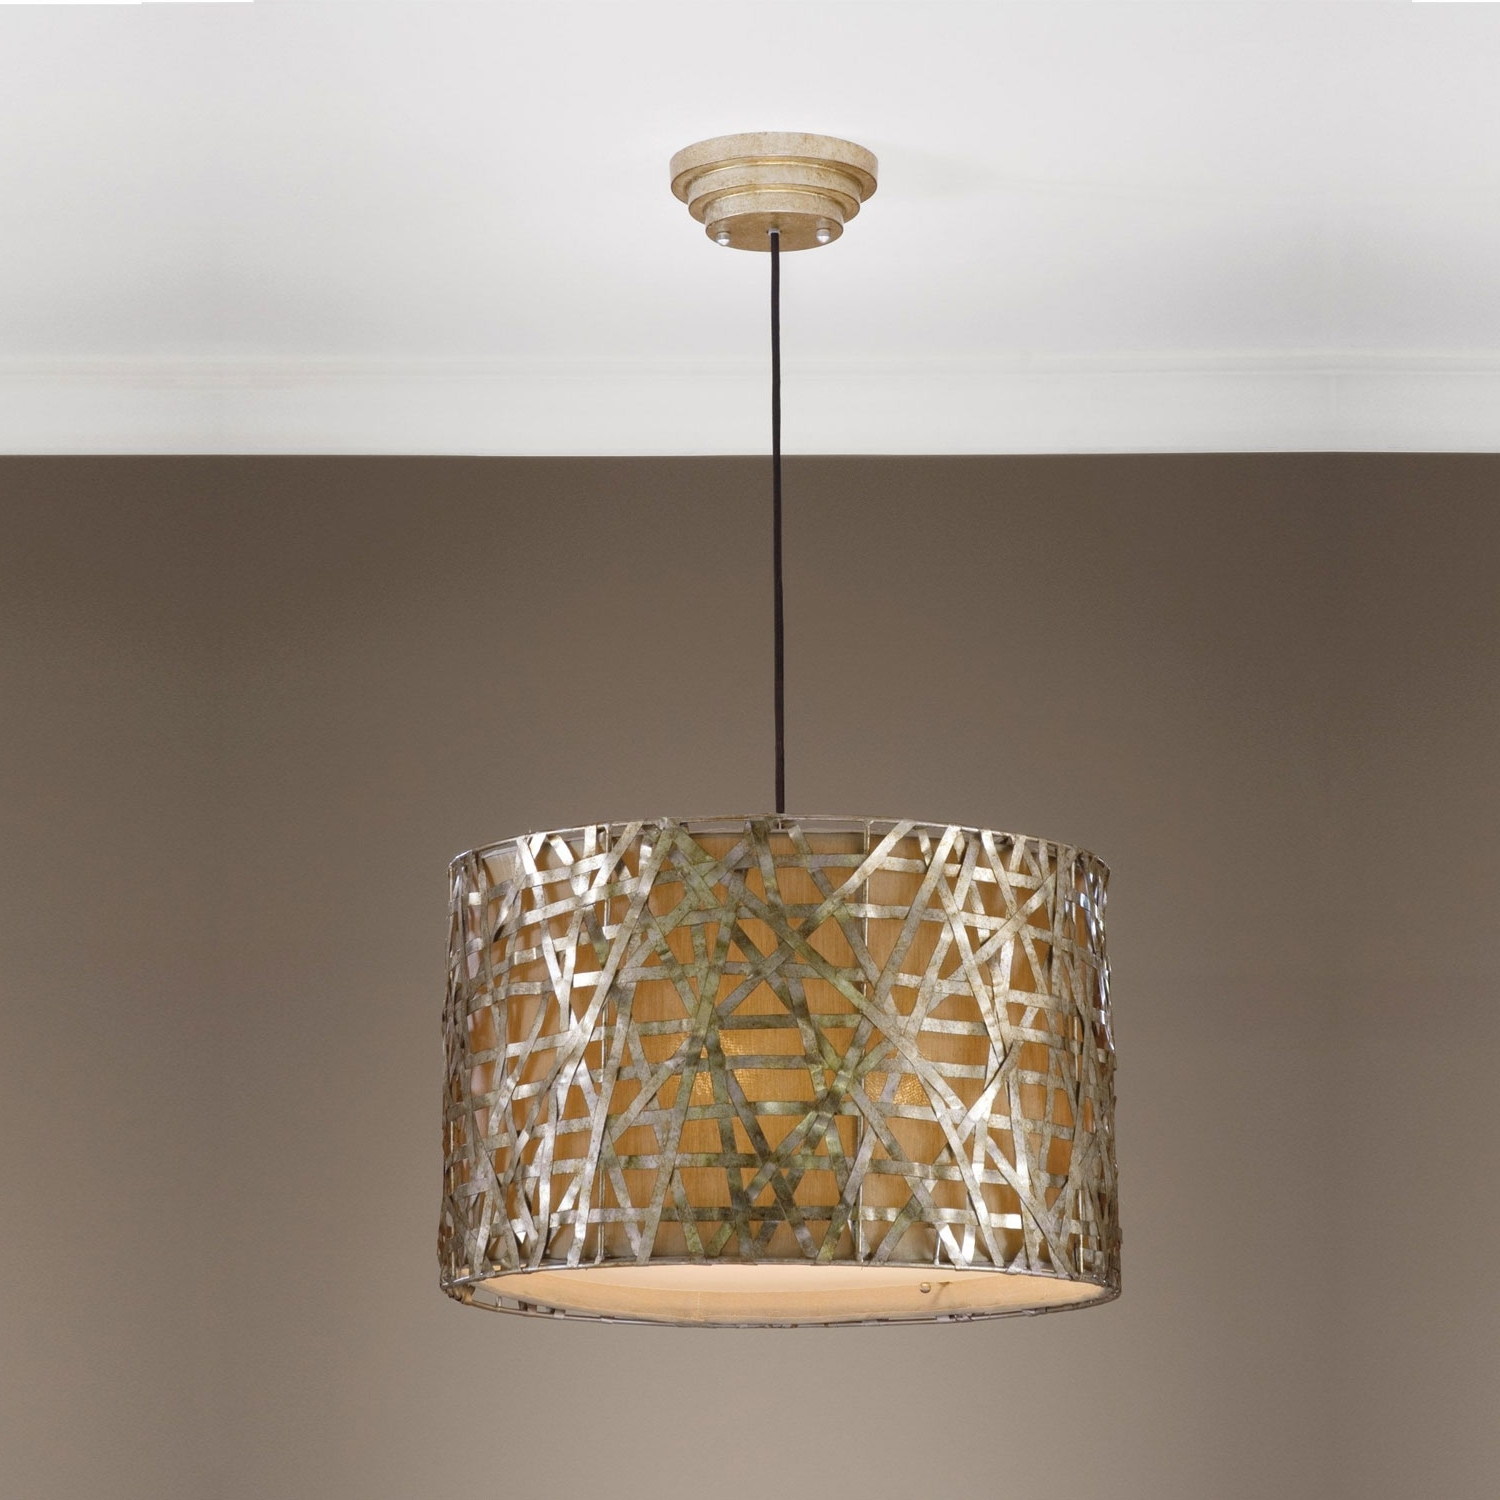 Light Fixture : Large Glass Pendant Lighting Semi Flush Mount Inside 2019 Metal Drum Chandeliers (View 8 of 20)